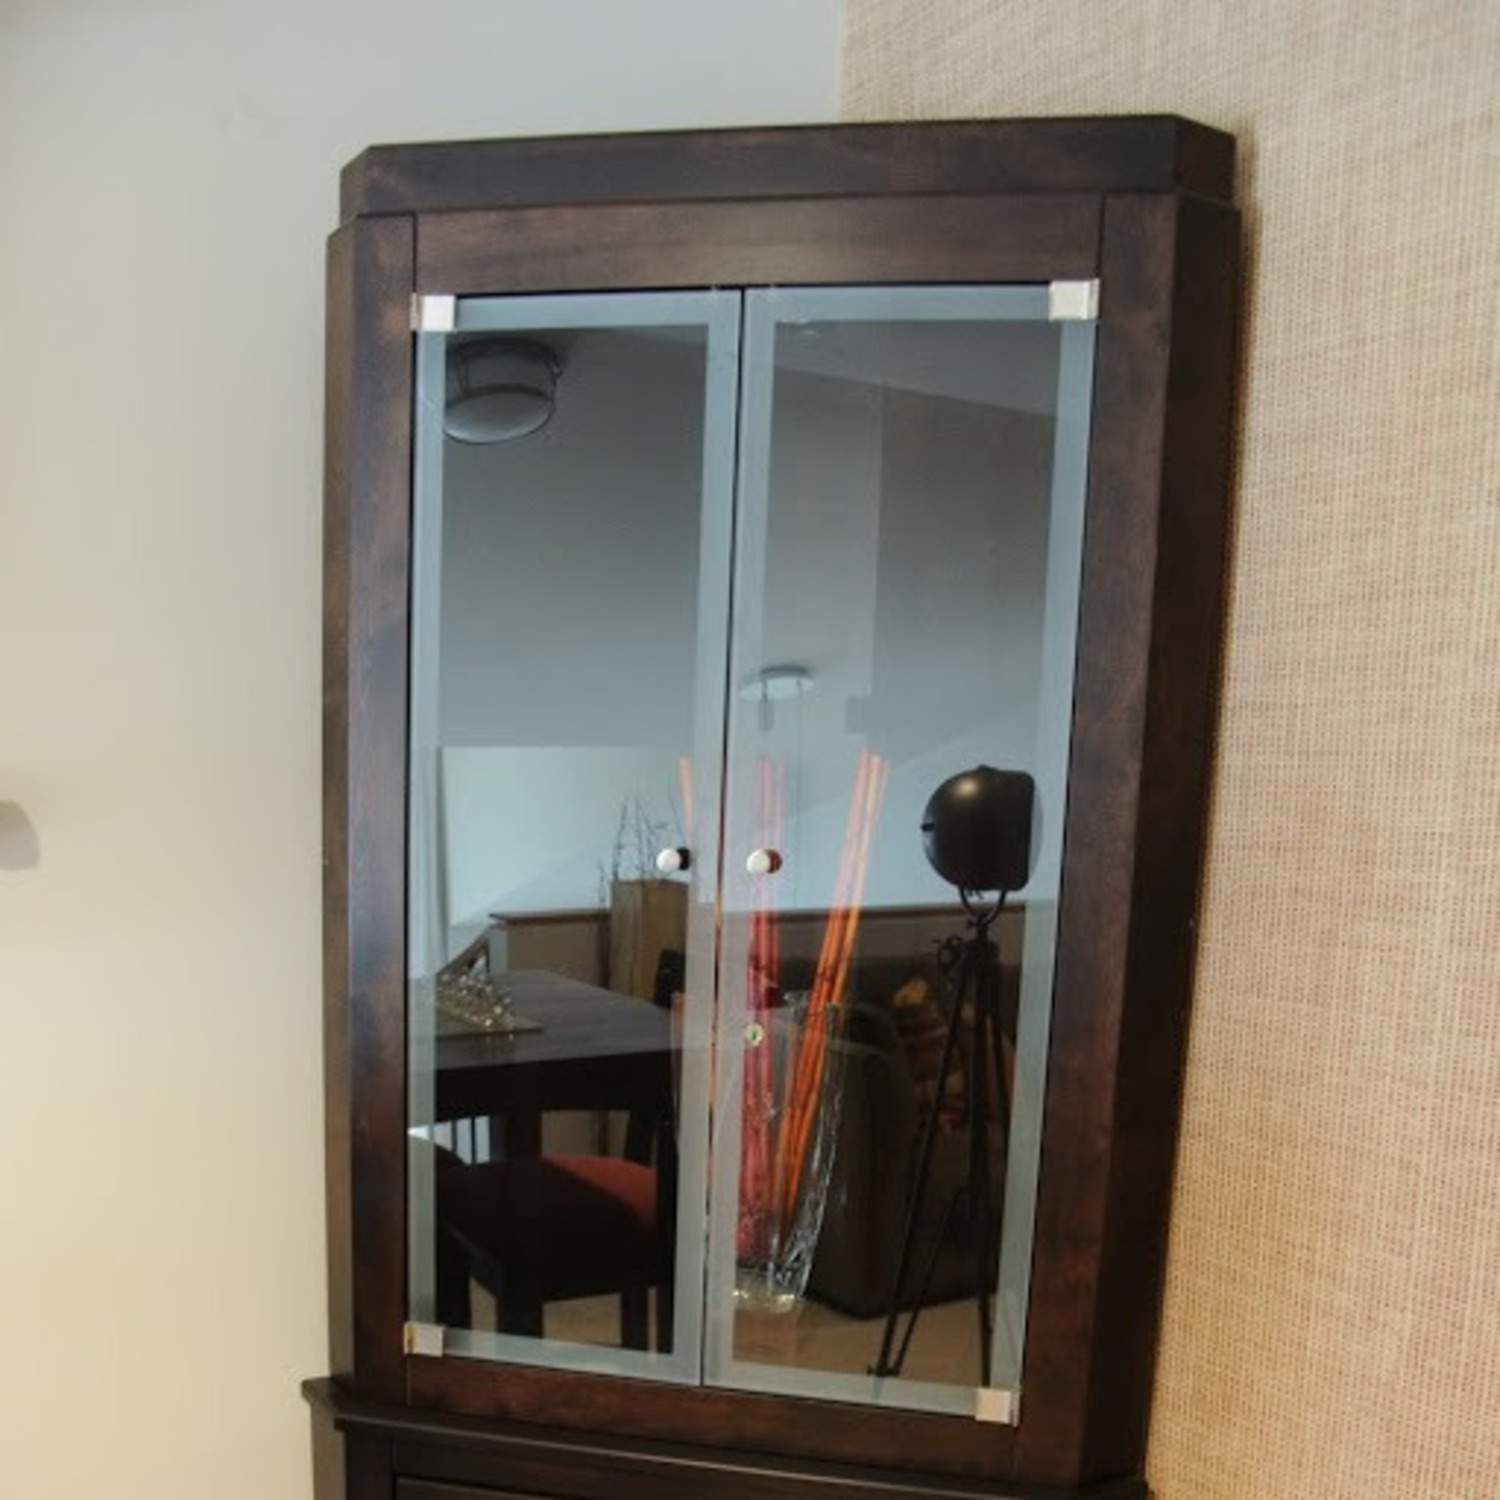 Canadel Corner Curio Cabinet with Light - image-3